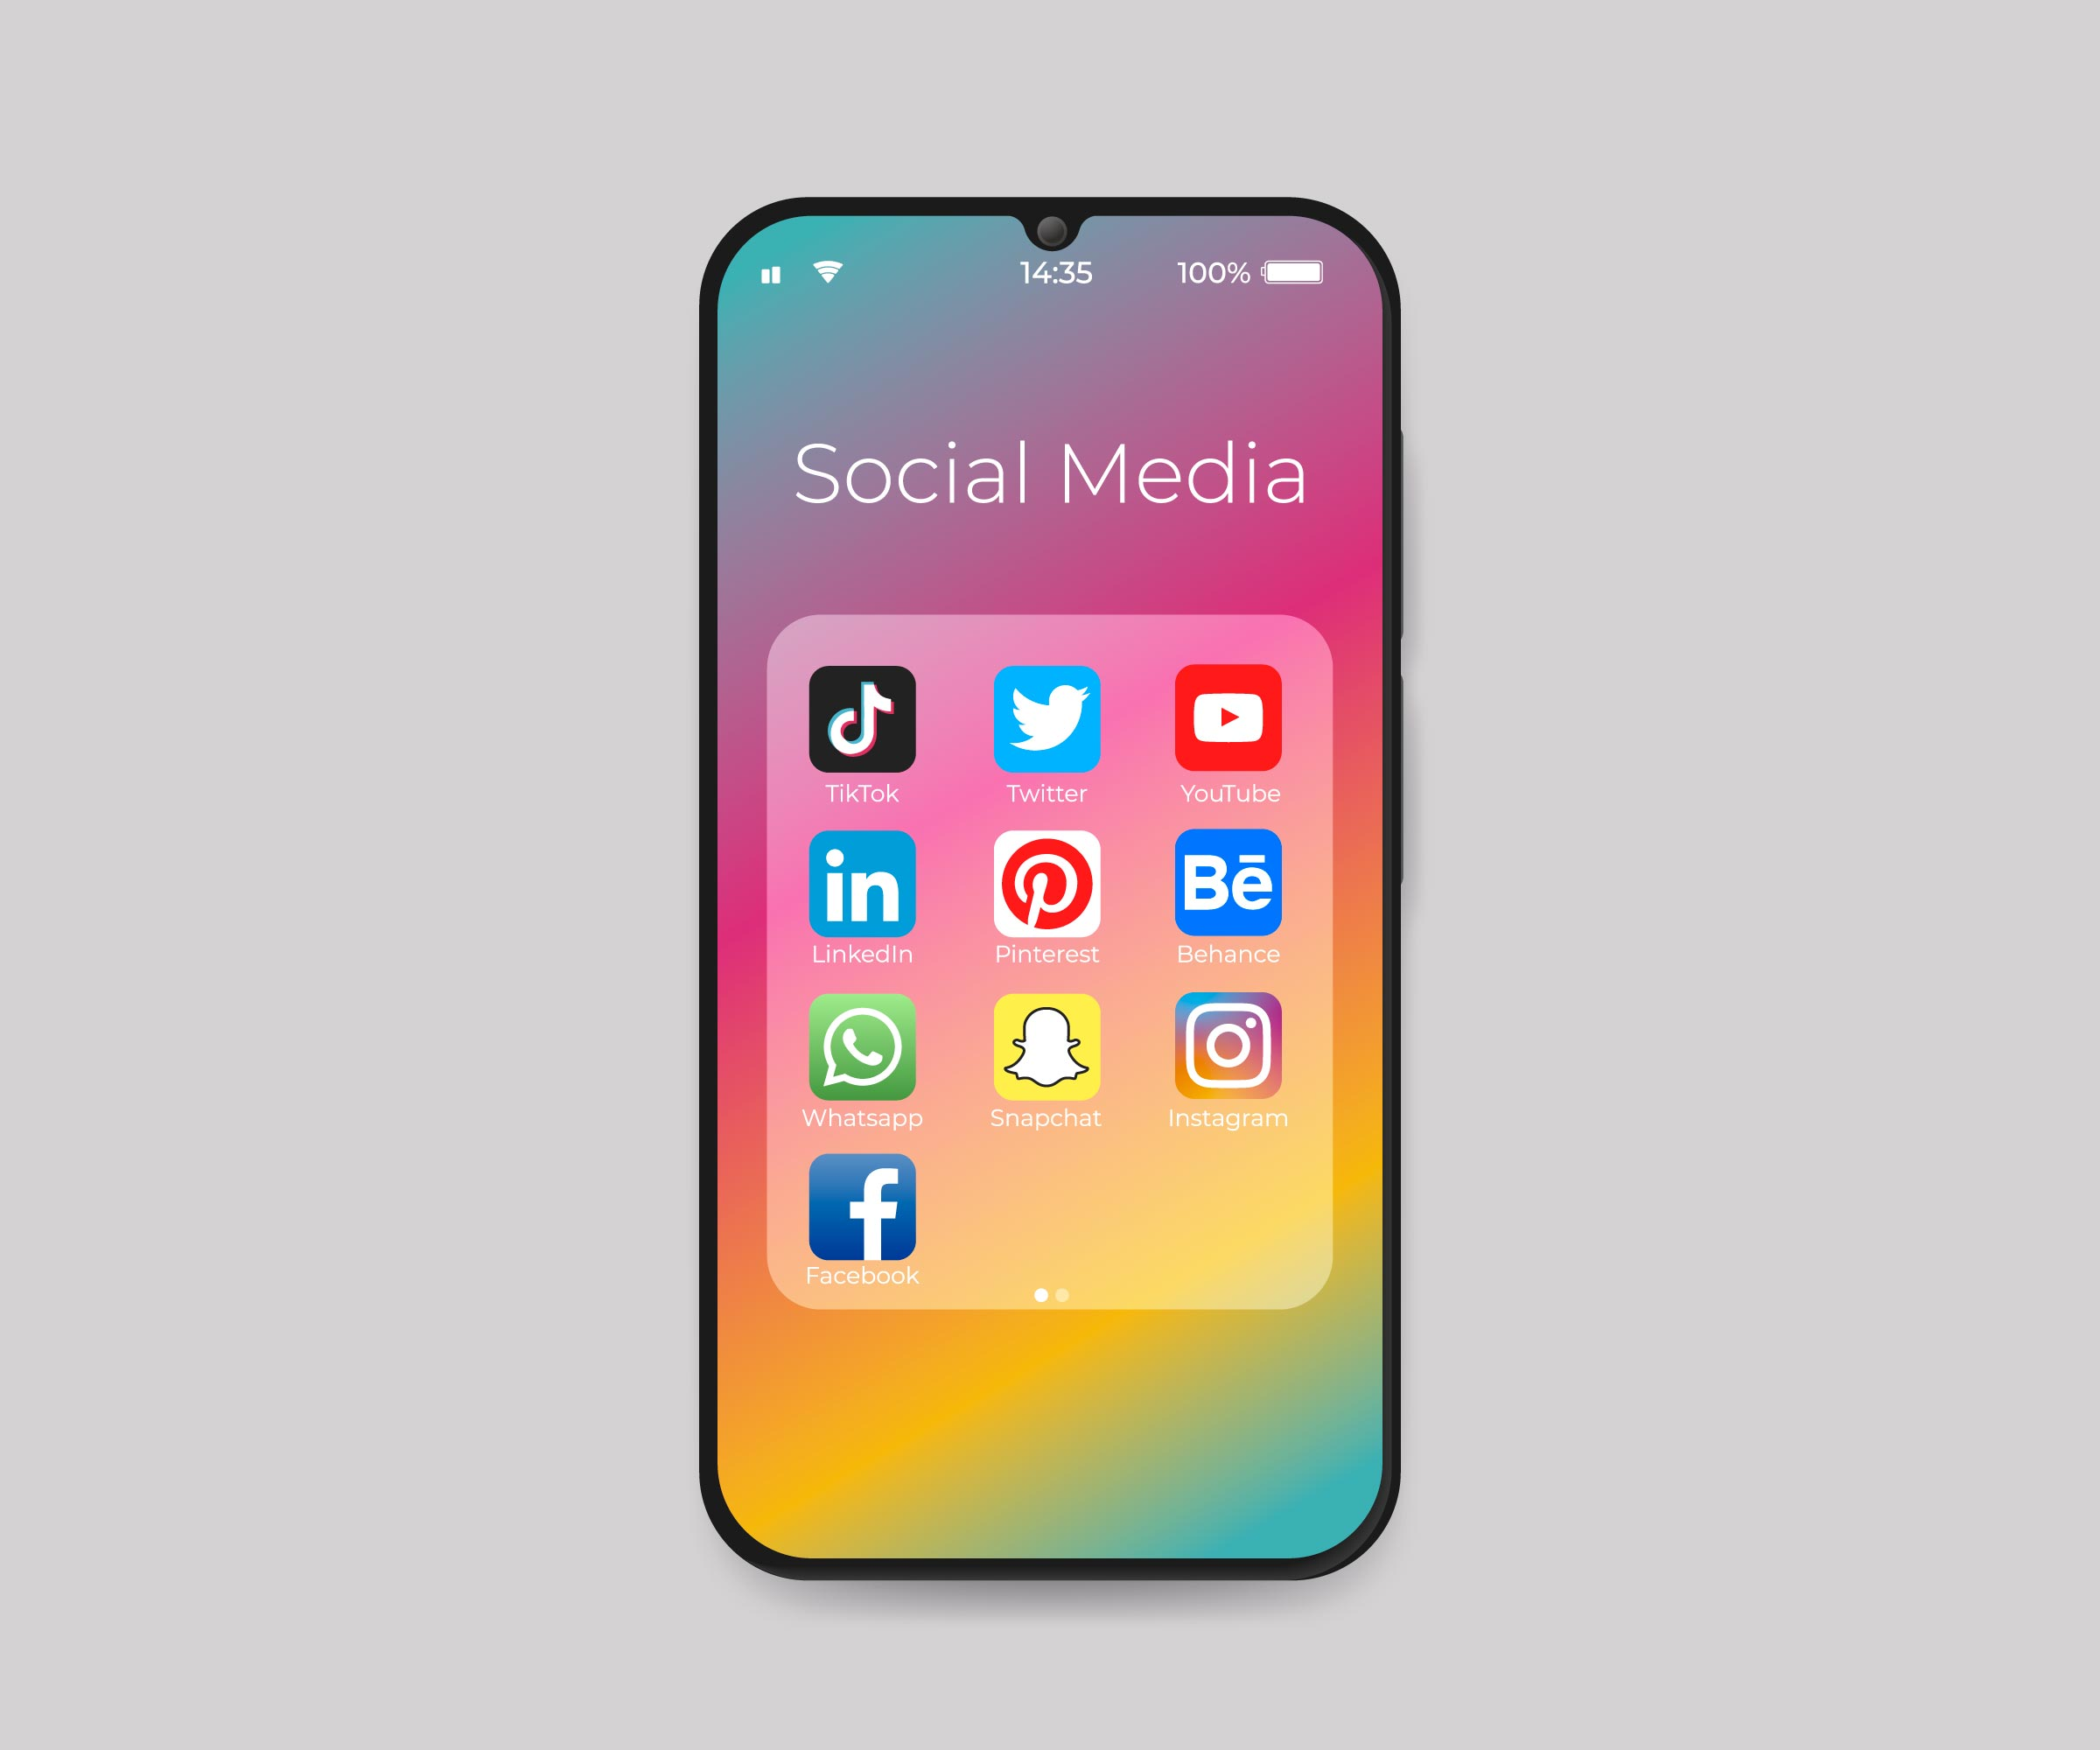 Social Media and Relative Services